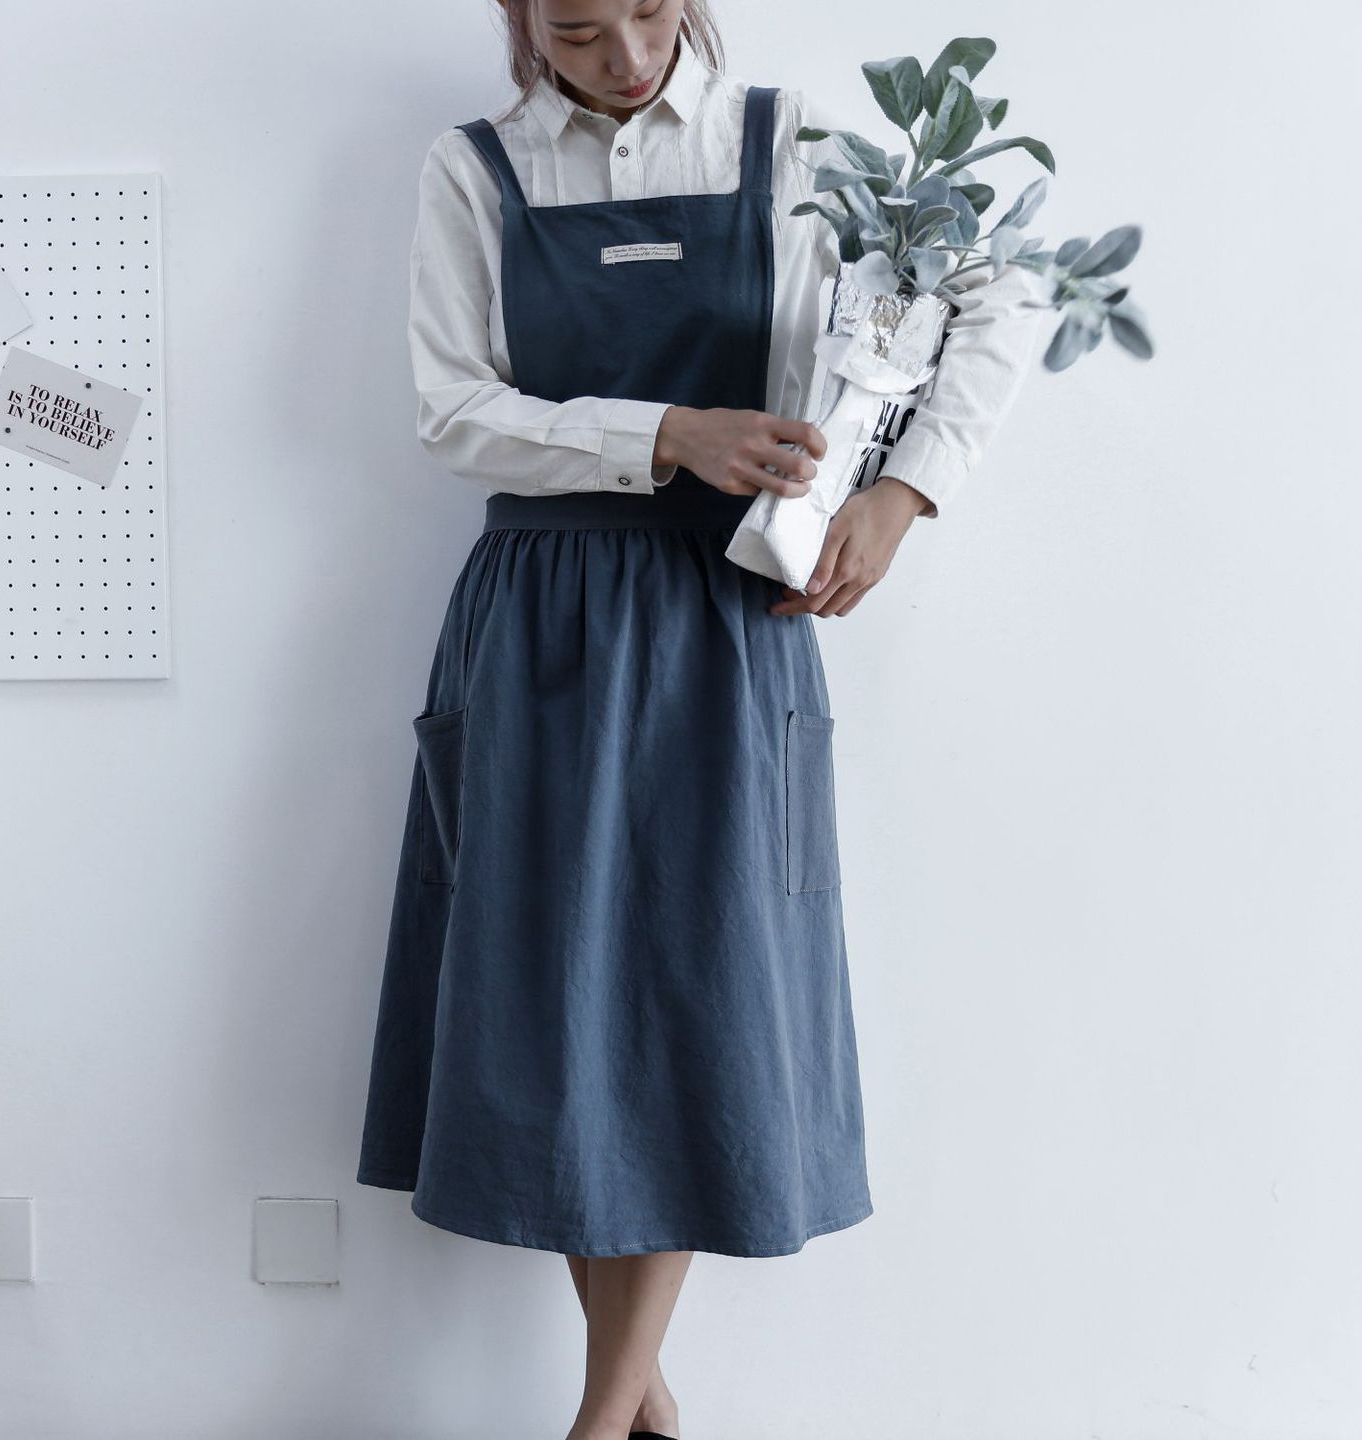 Brief Nordic Pleated Skirt Cotton Linen Apron Coffee Shops And Flower Shops Work Cleaning Aprons For Woman